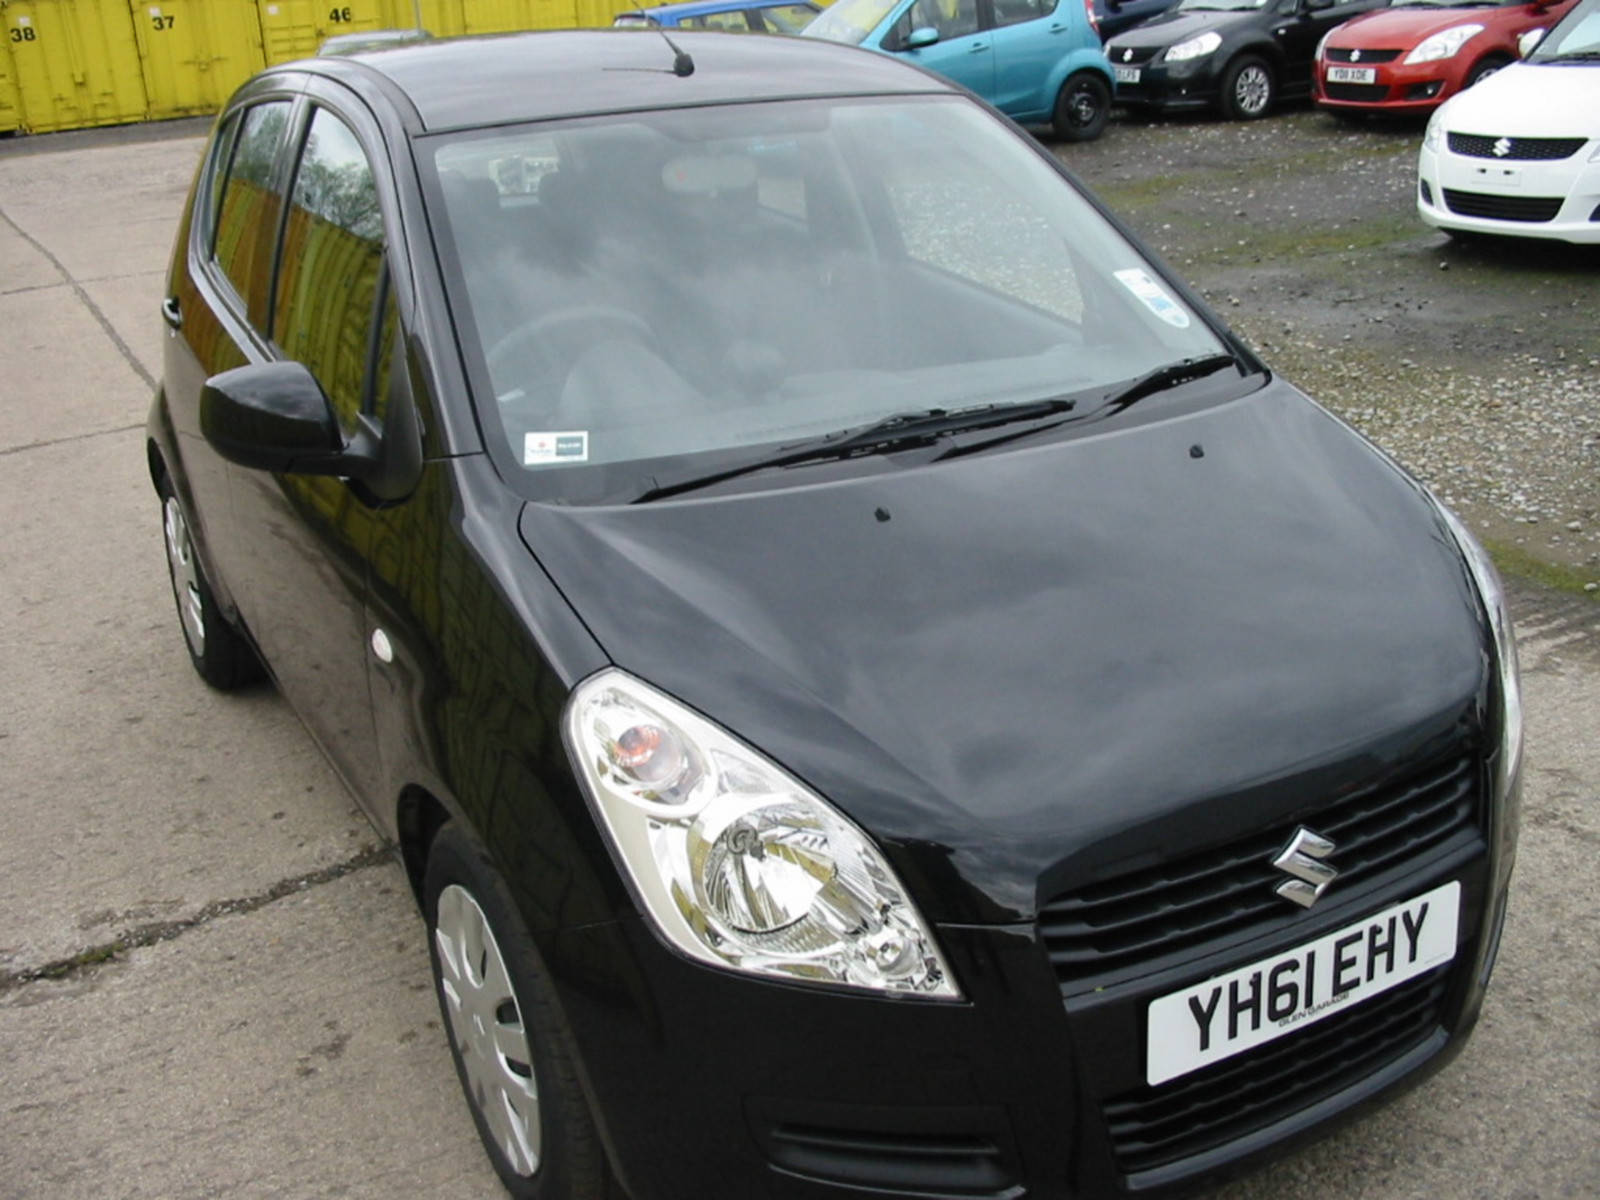 Suzuki Splash 1.2 SZ3 Hatchback Petrol Black